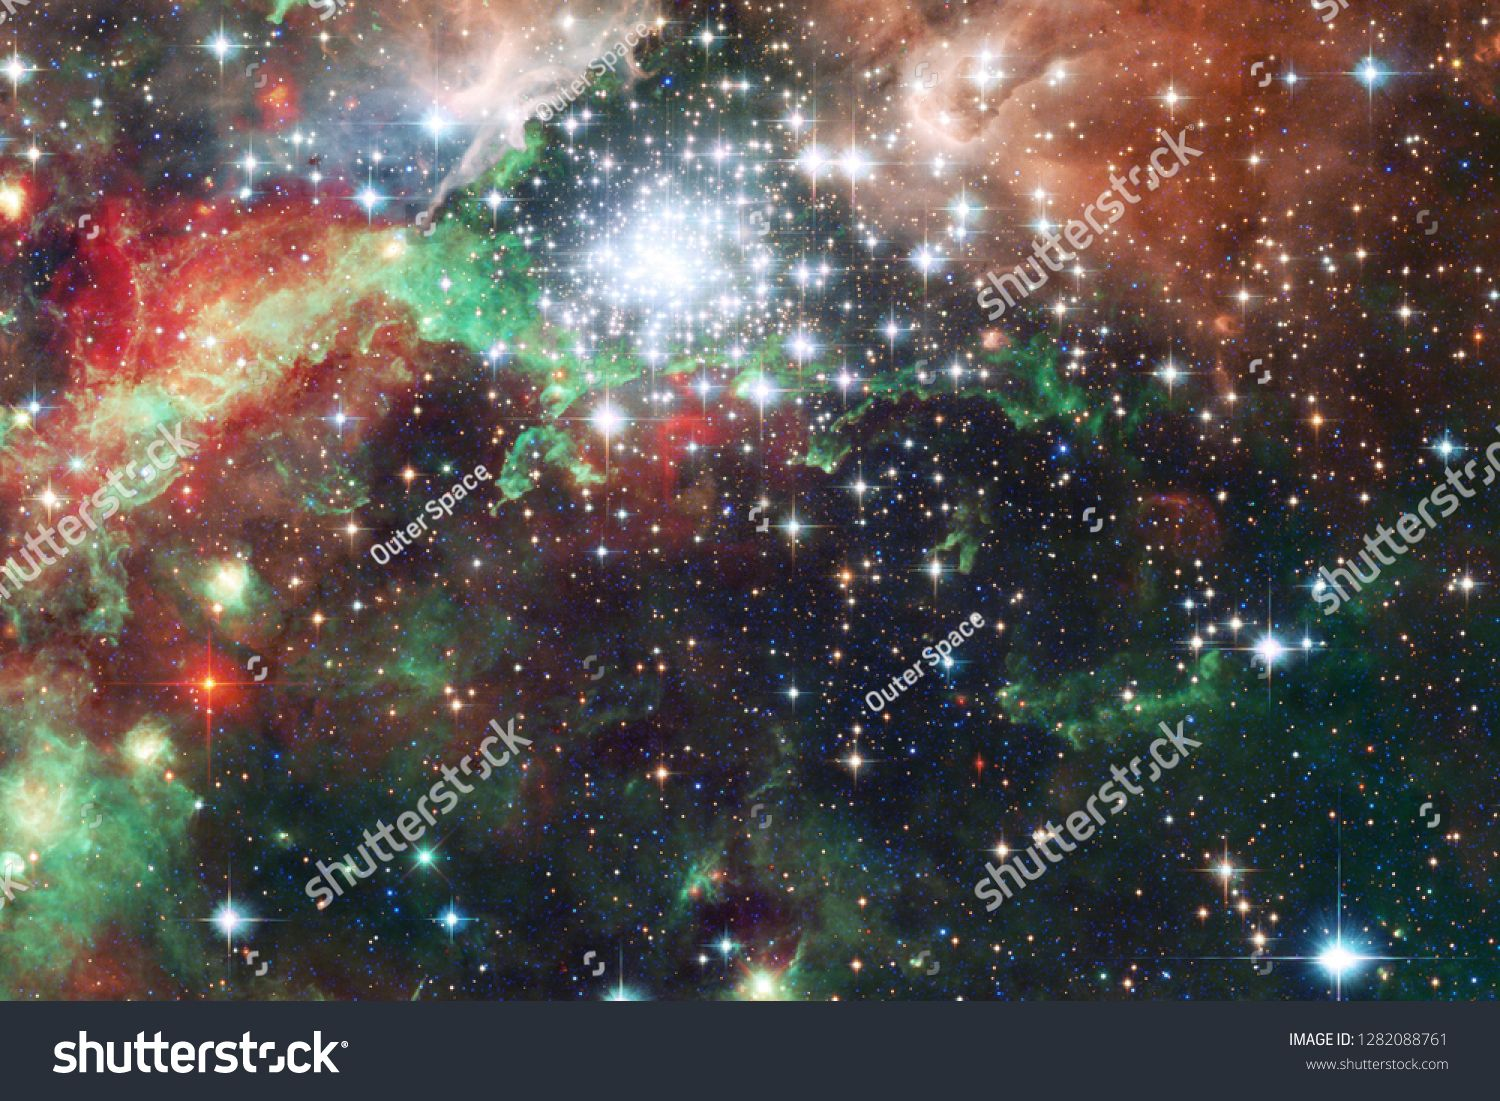 Beauty Deep Space Science Fiction Fantasy In High Resolution Ideal For Wallpaper Elements Of This Image F In 2020 Science Fiction Fantasy Deep Space Science Fiction